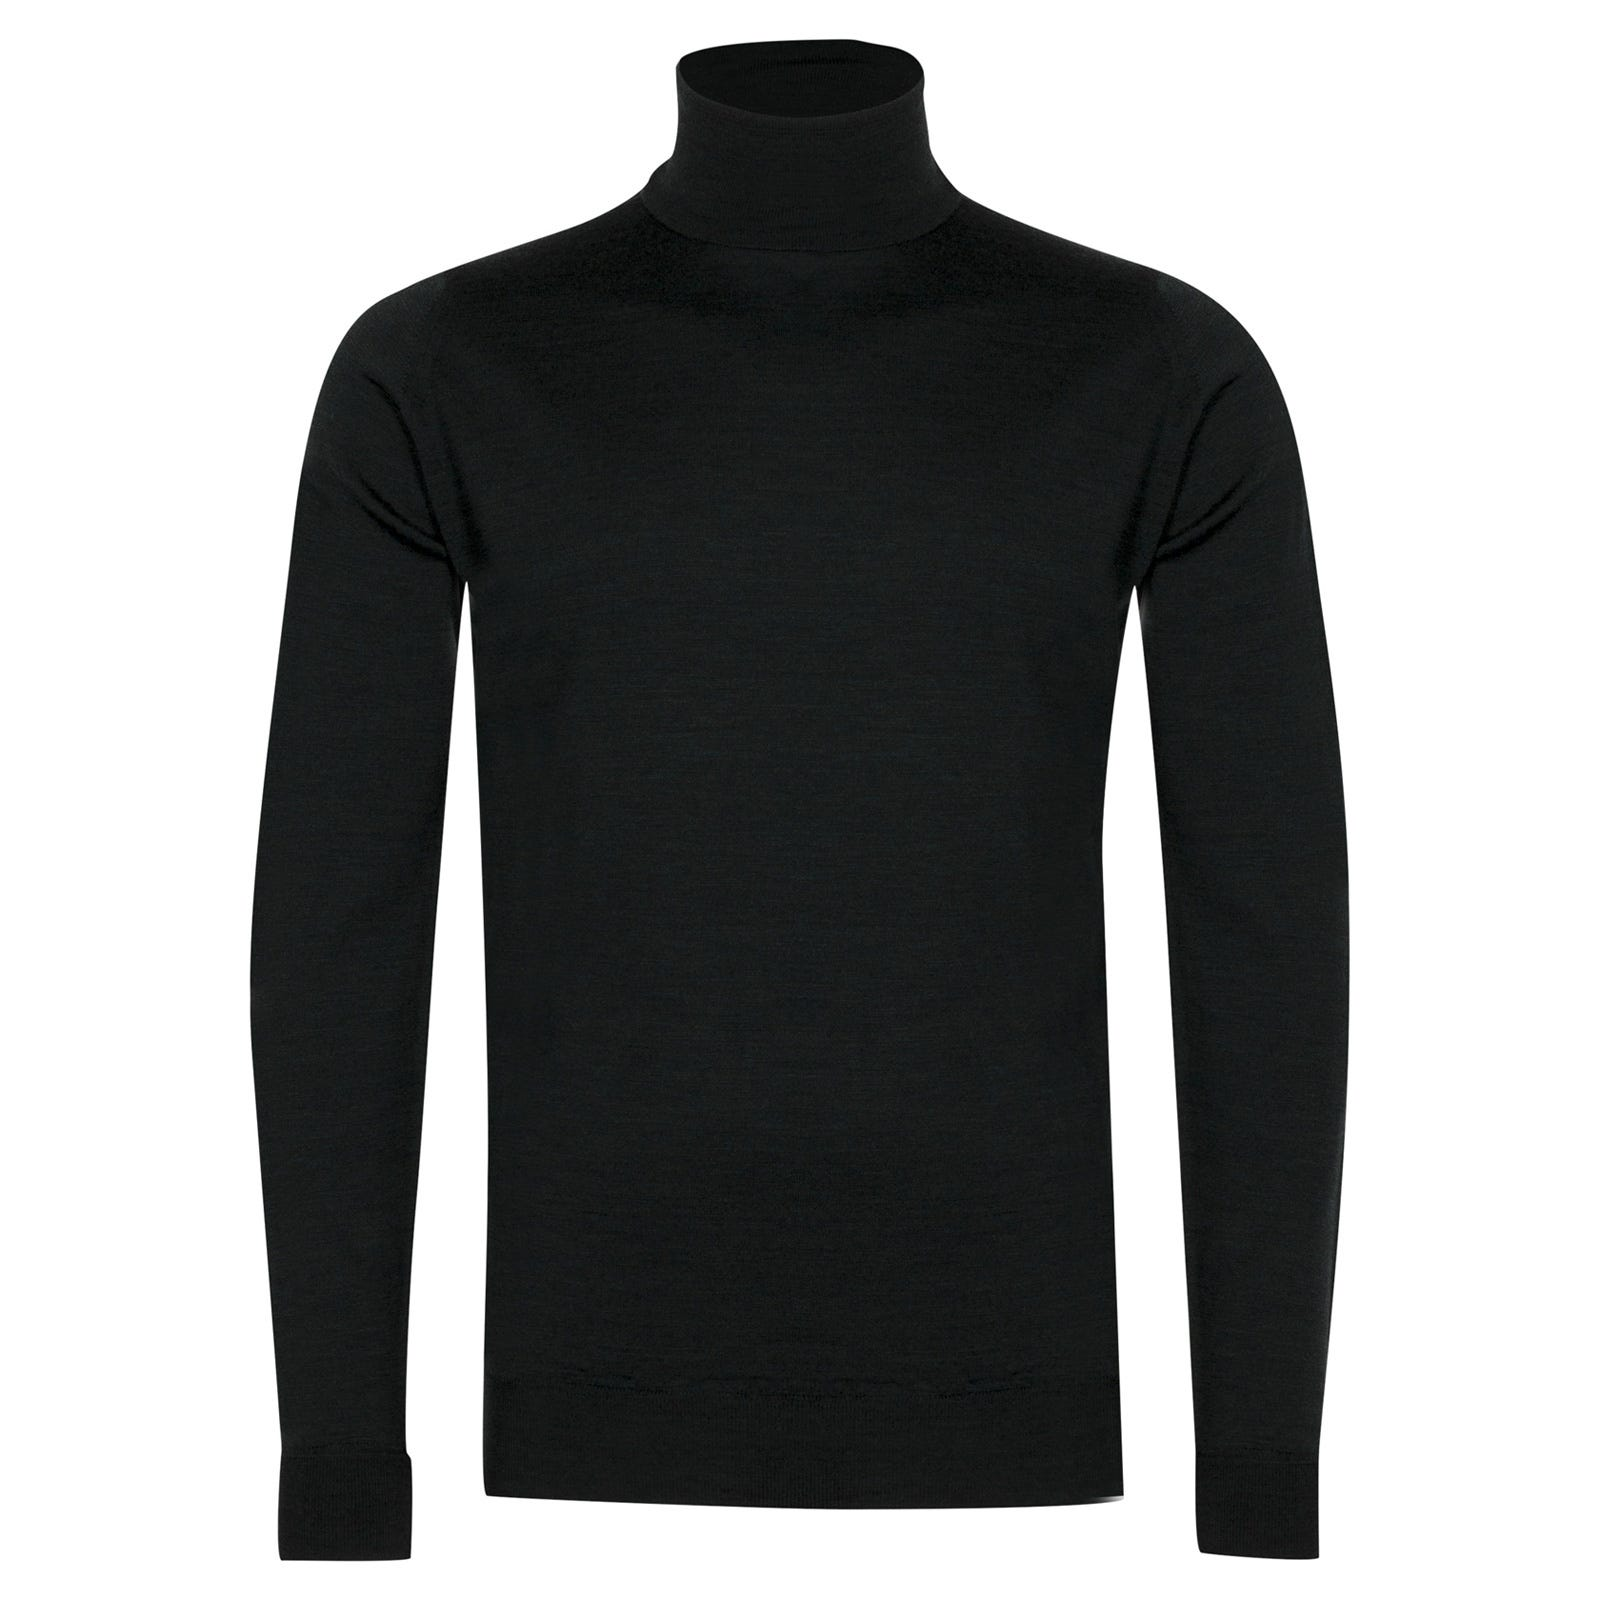 John Smedley richards Merino Wool Pullover in Racing Green-L